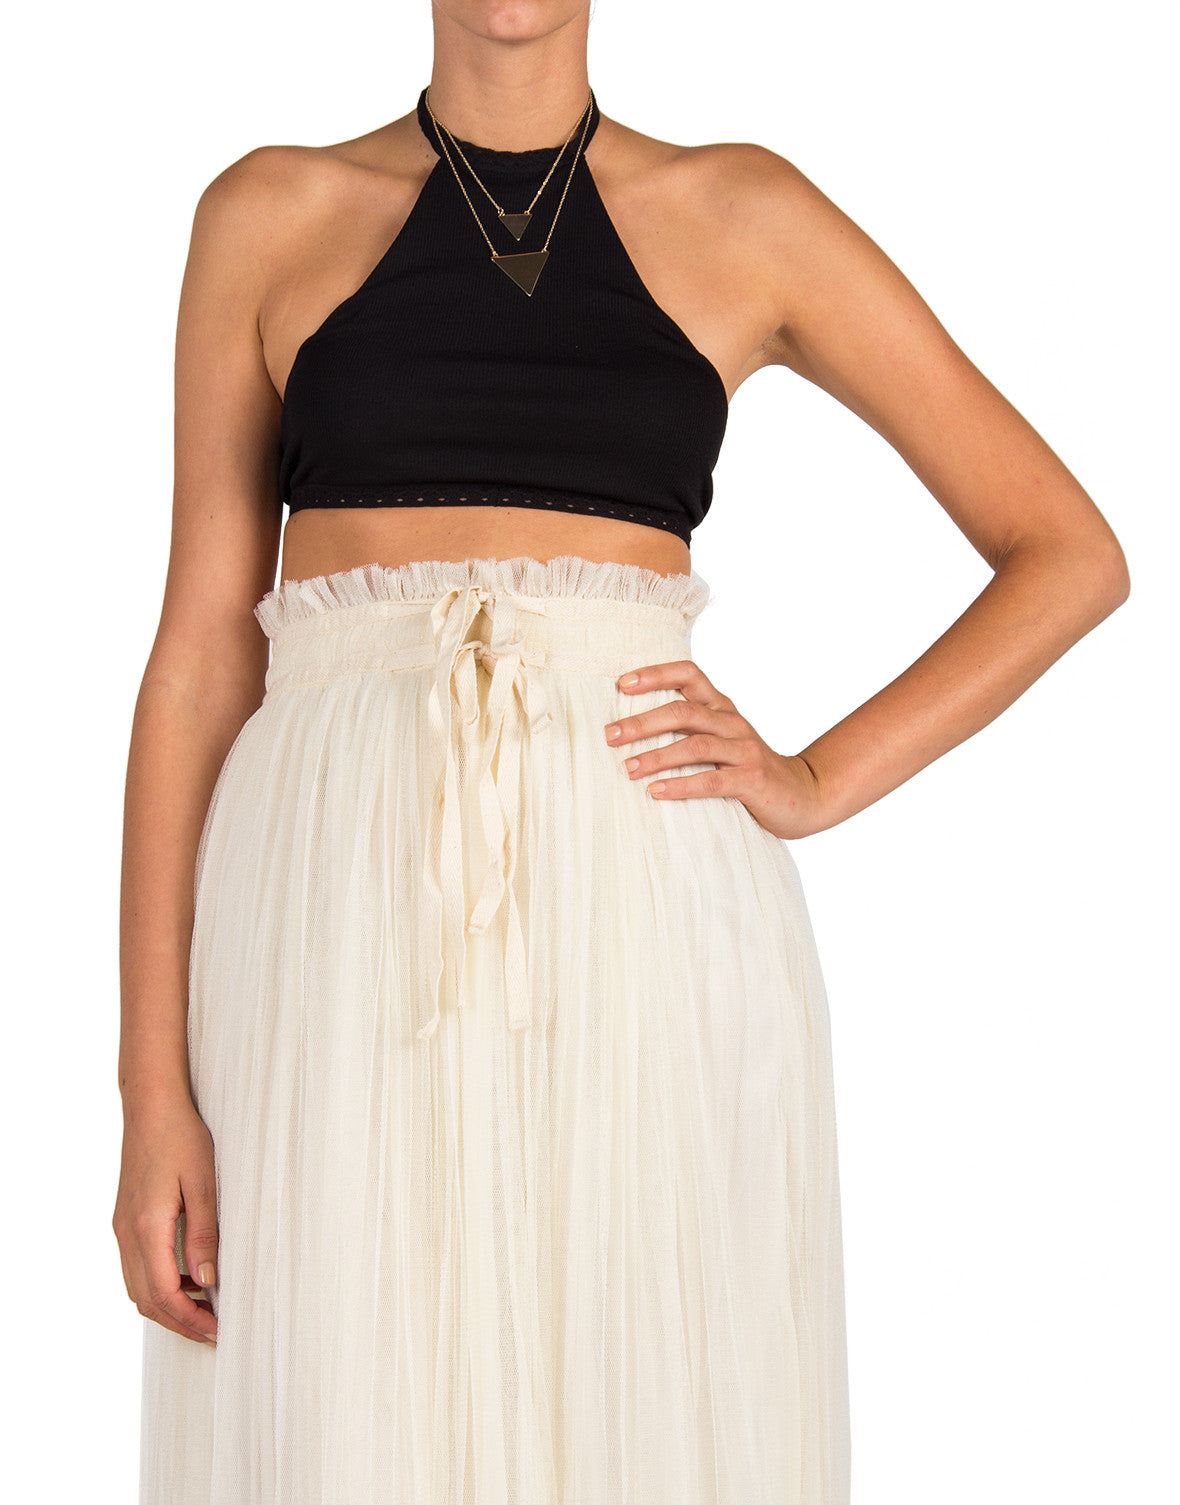 Bare Back Halter Crop Top - Black